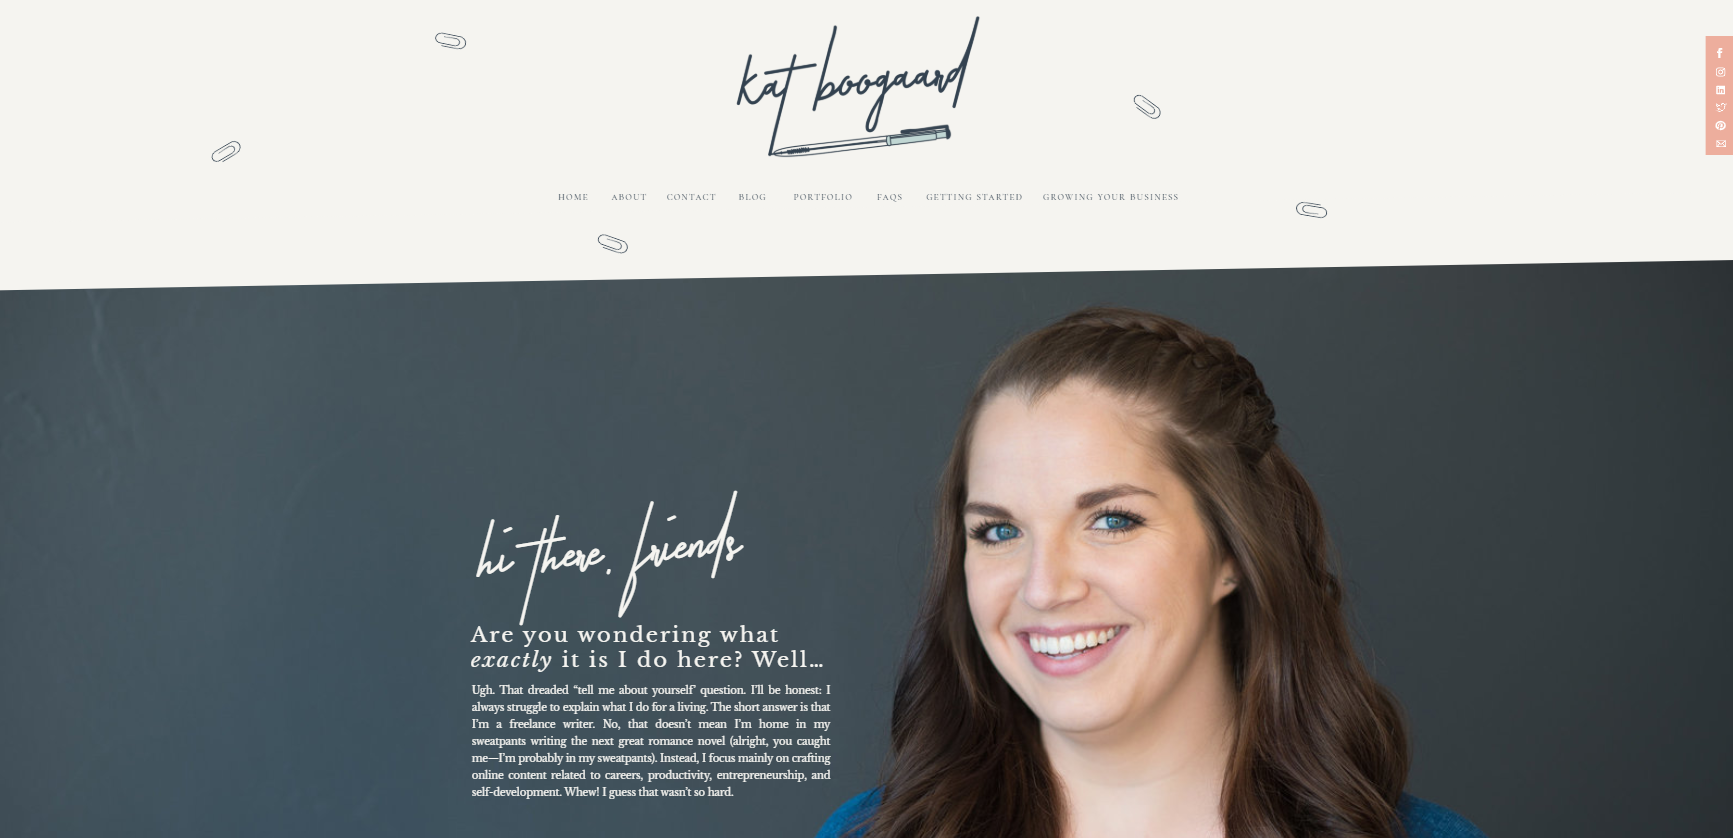 kat boogaard freelance writer website example